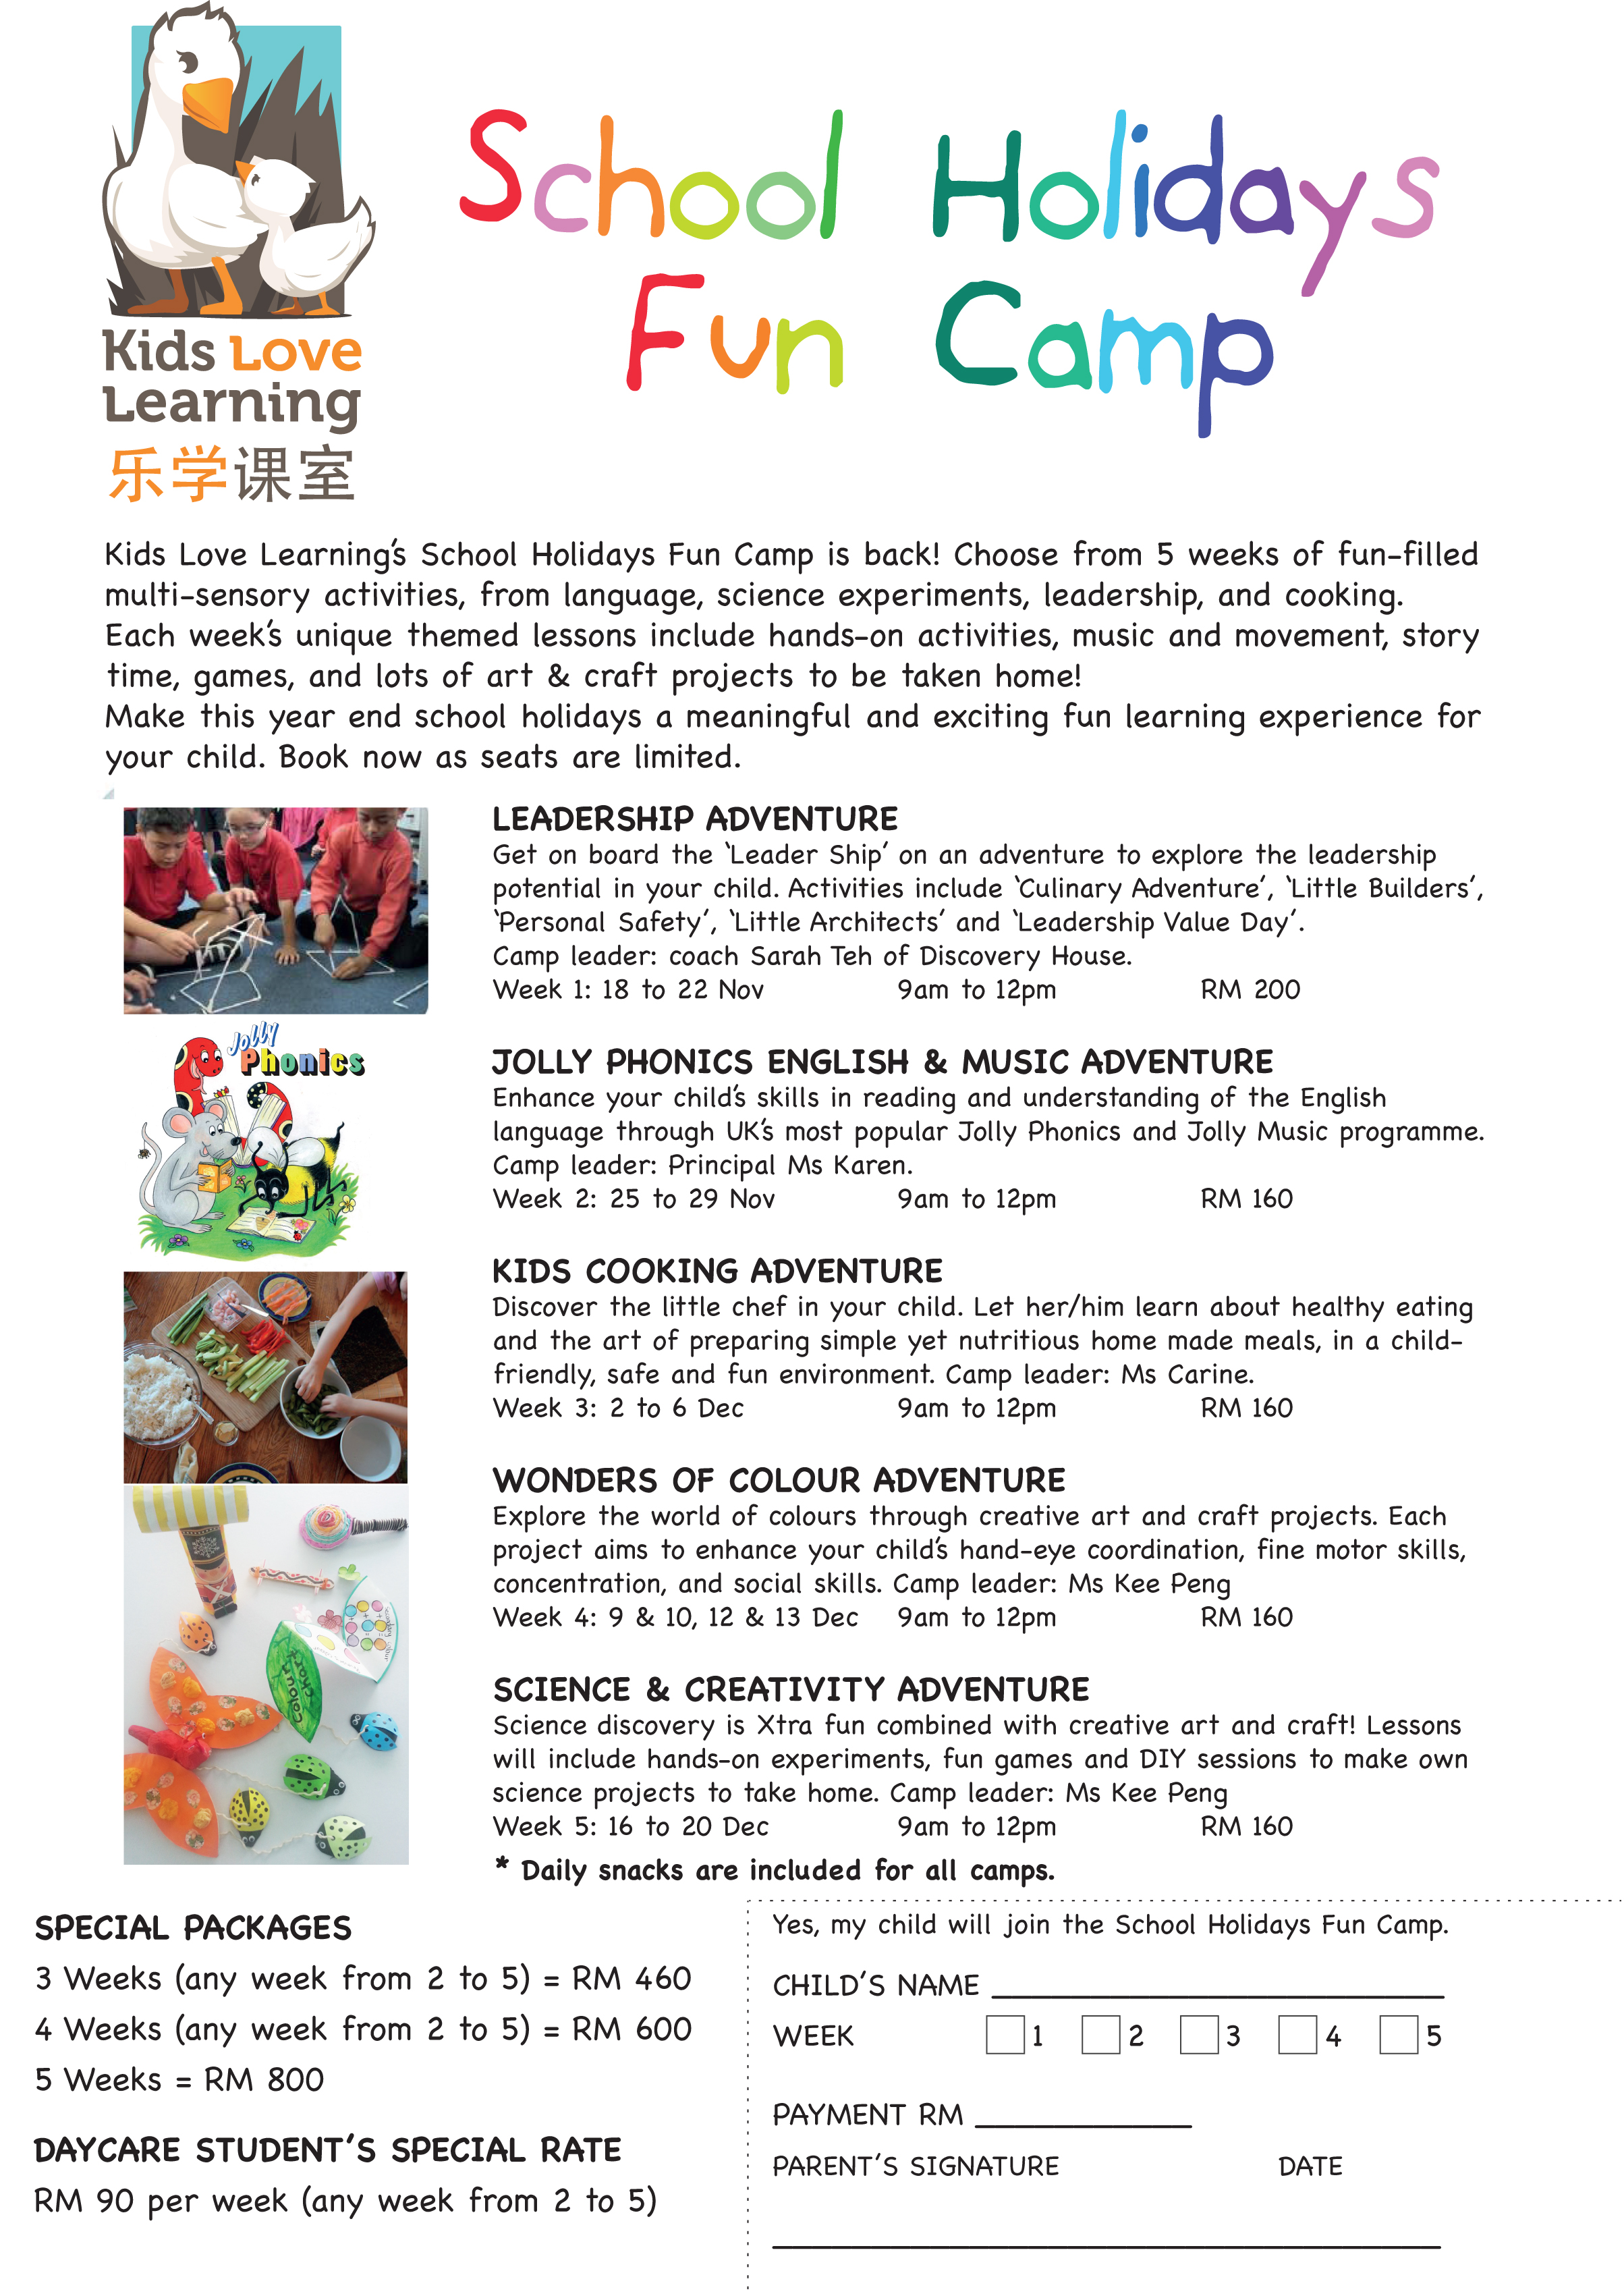 School Holidays Fun Camp is back at Kids Love Learning Kindergarten and Childcare Centre